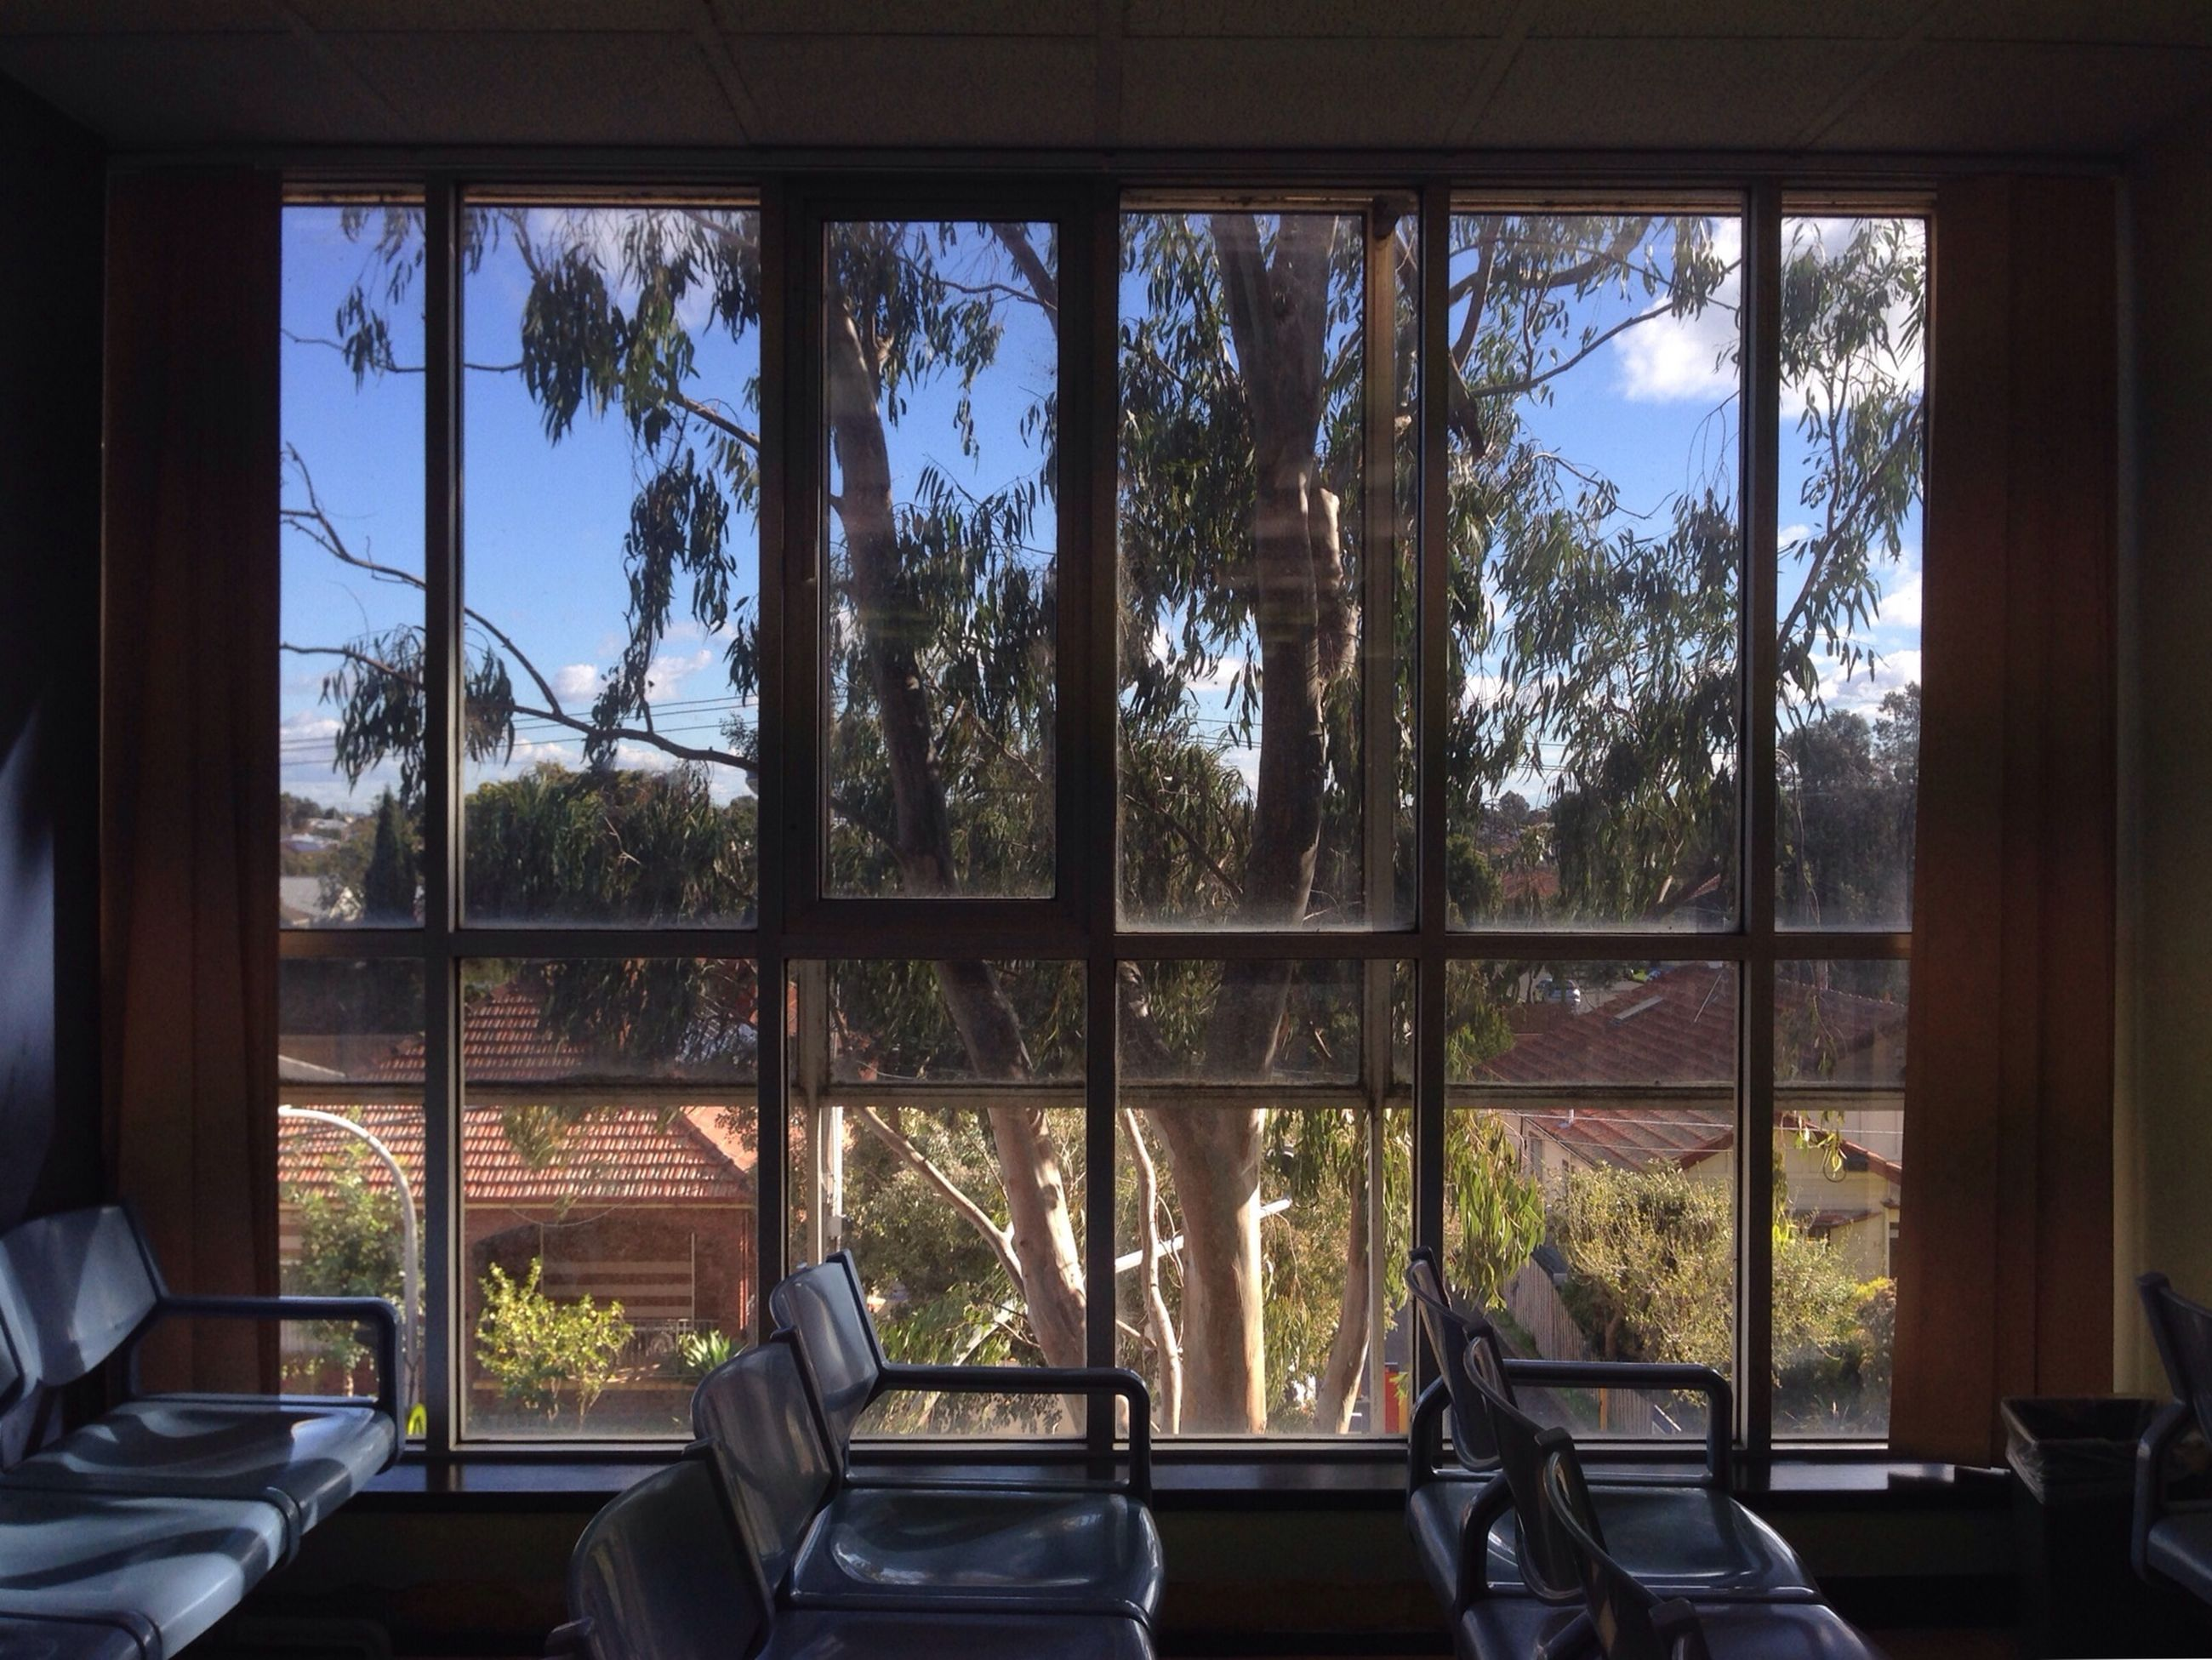 window, indoors, glass - material, transparent, tree, curtain, house, home interior, chair, built structure, day, architecture, absence, sunlight, growth, table, glass, no people, window frame, window sill